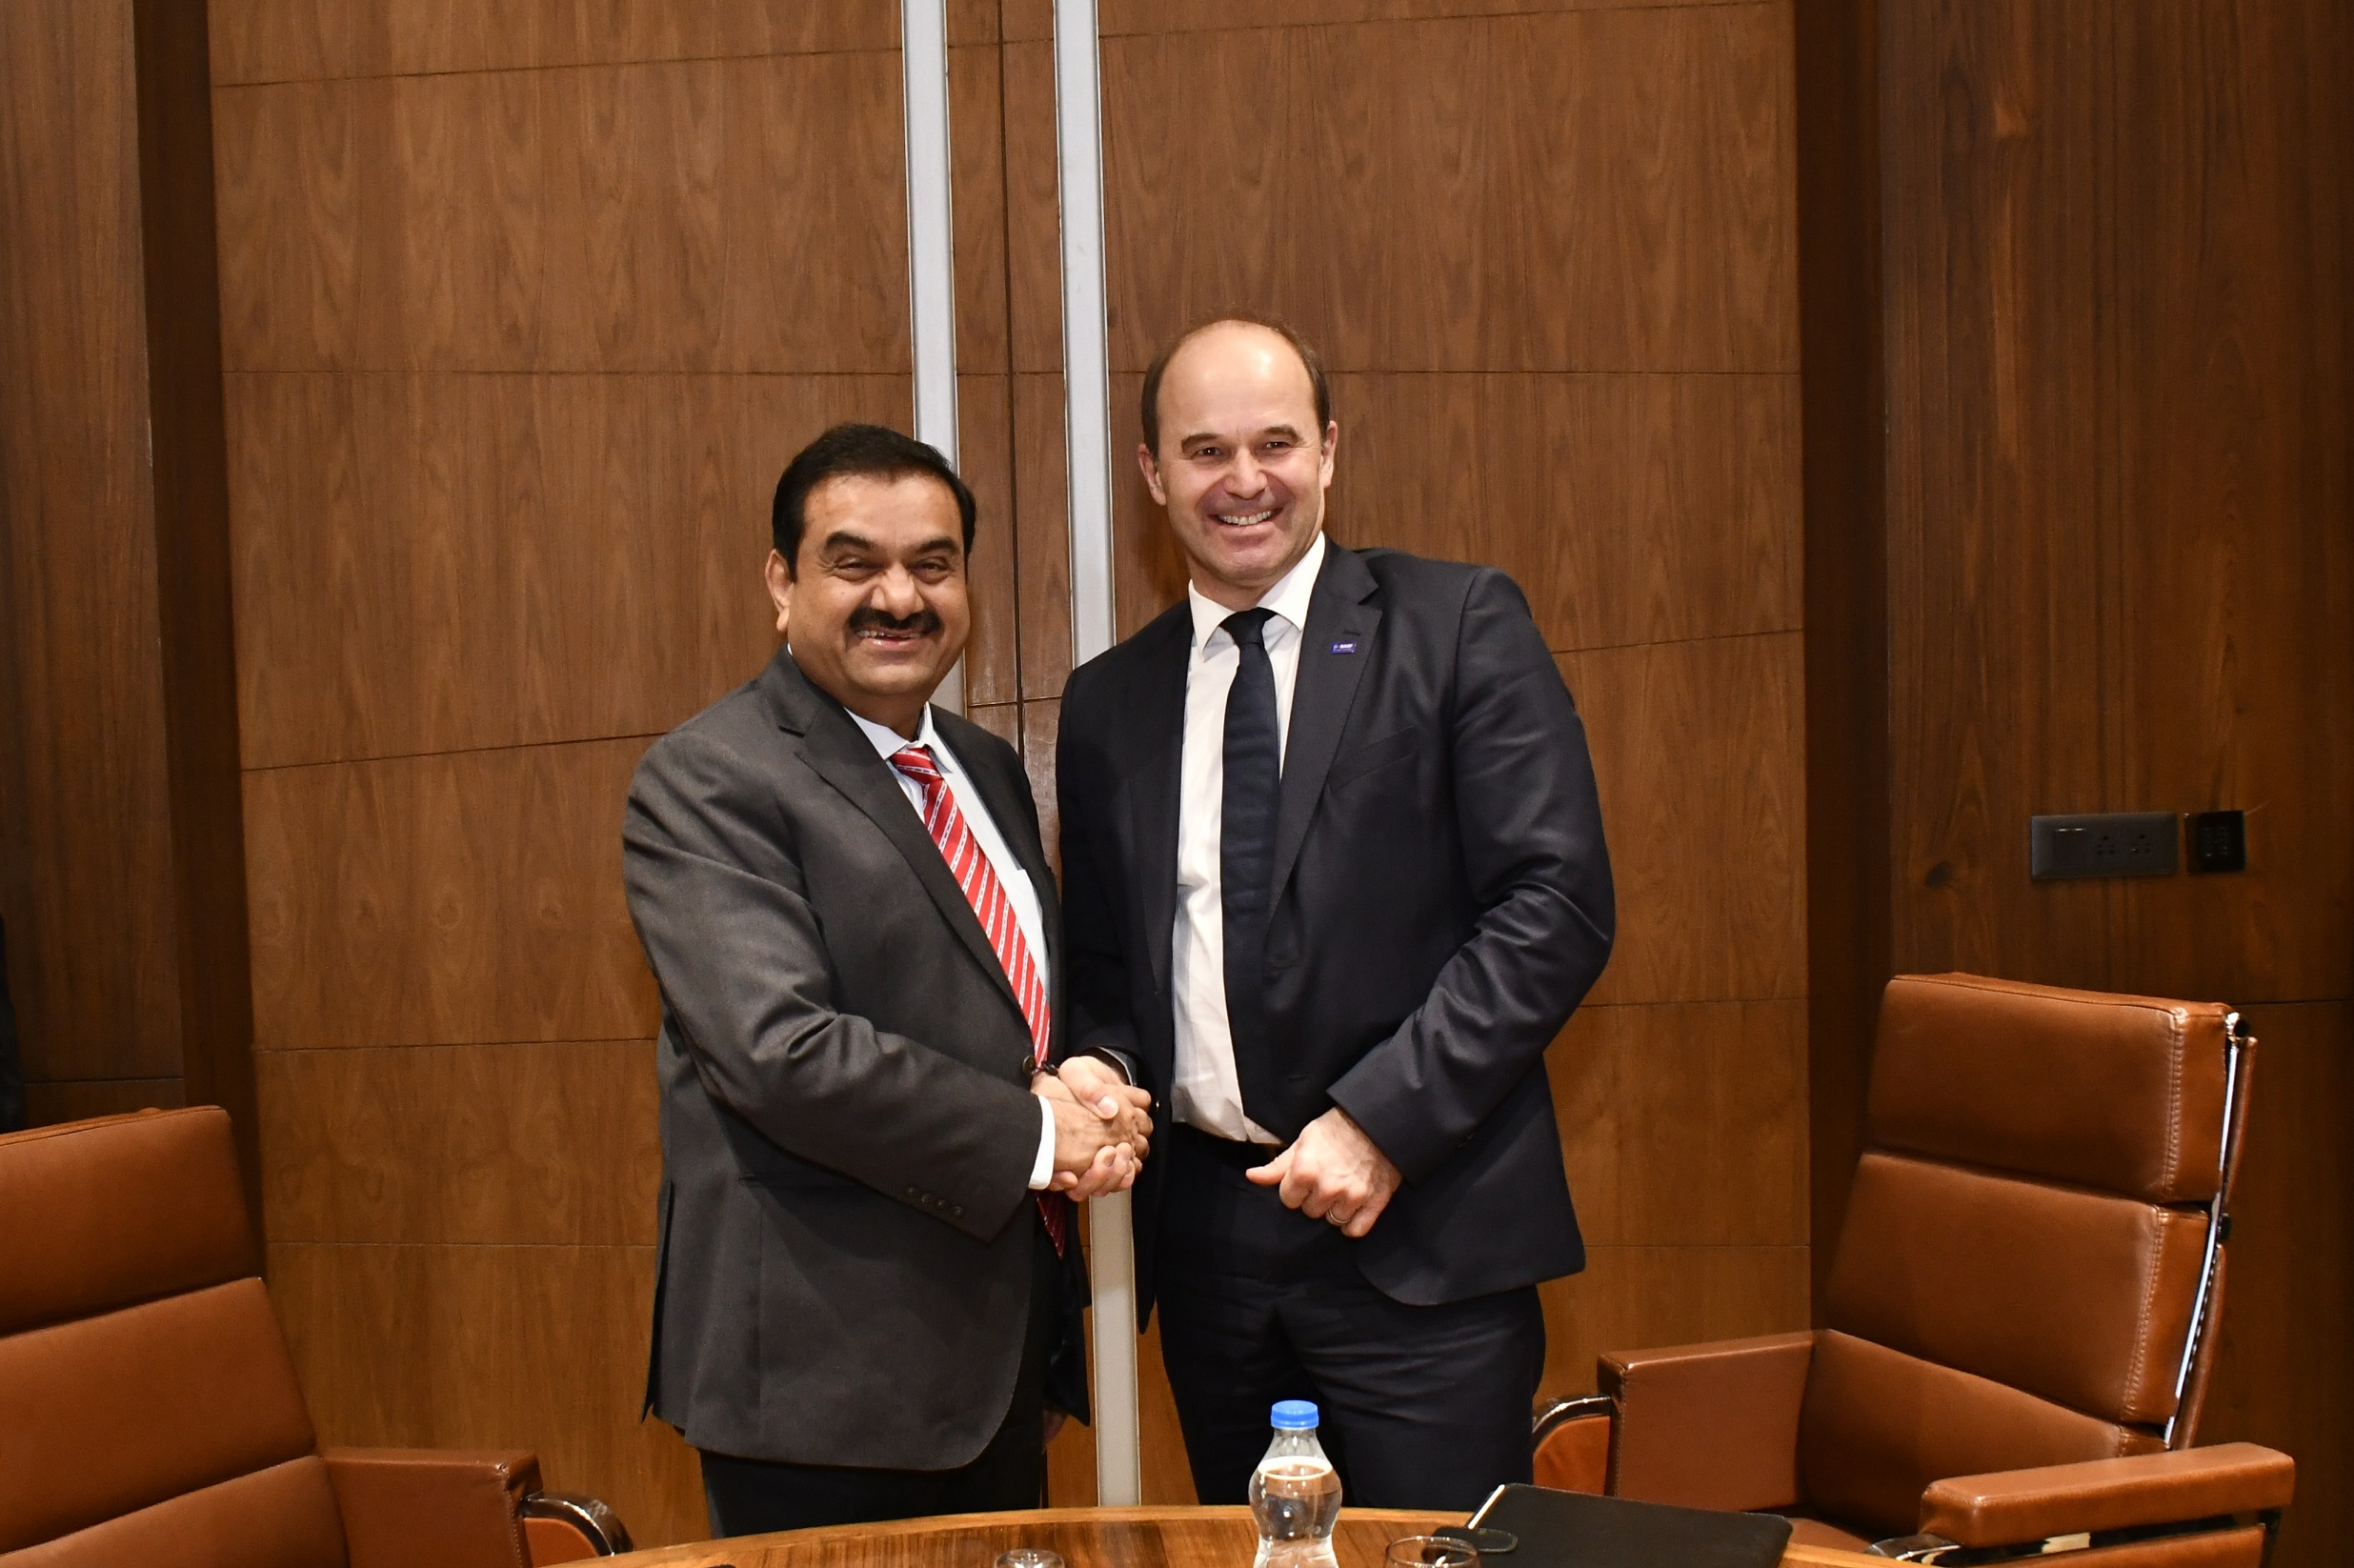 BASF to partner with Adani to evaluate investment in